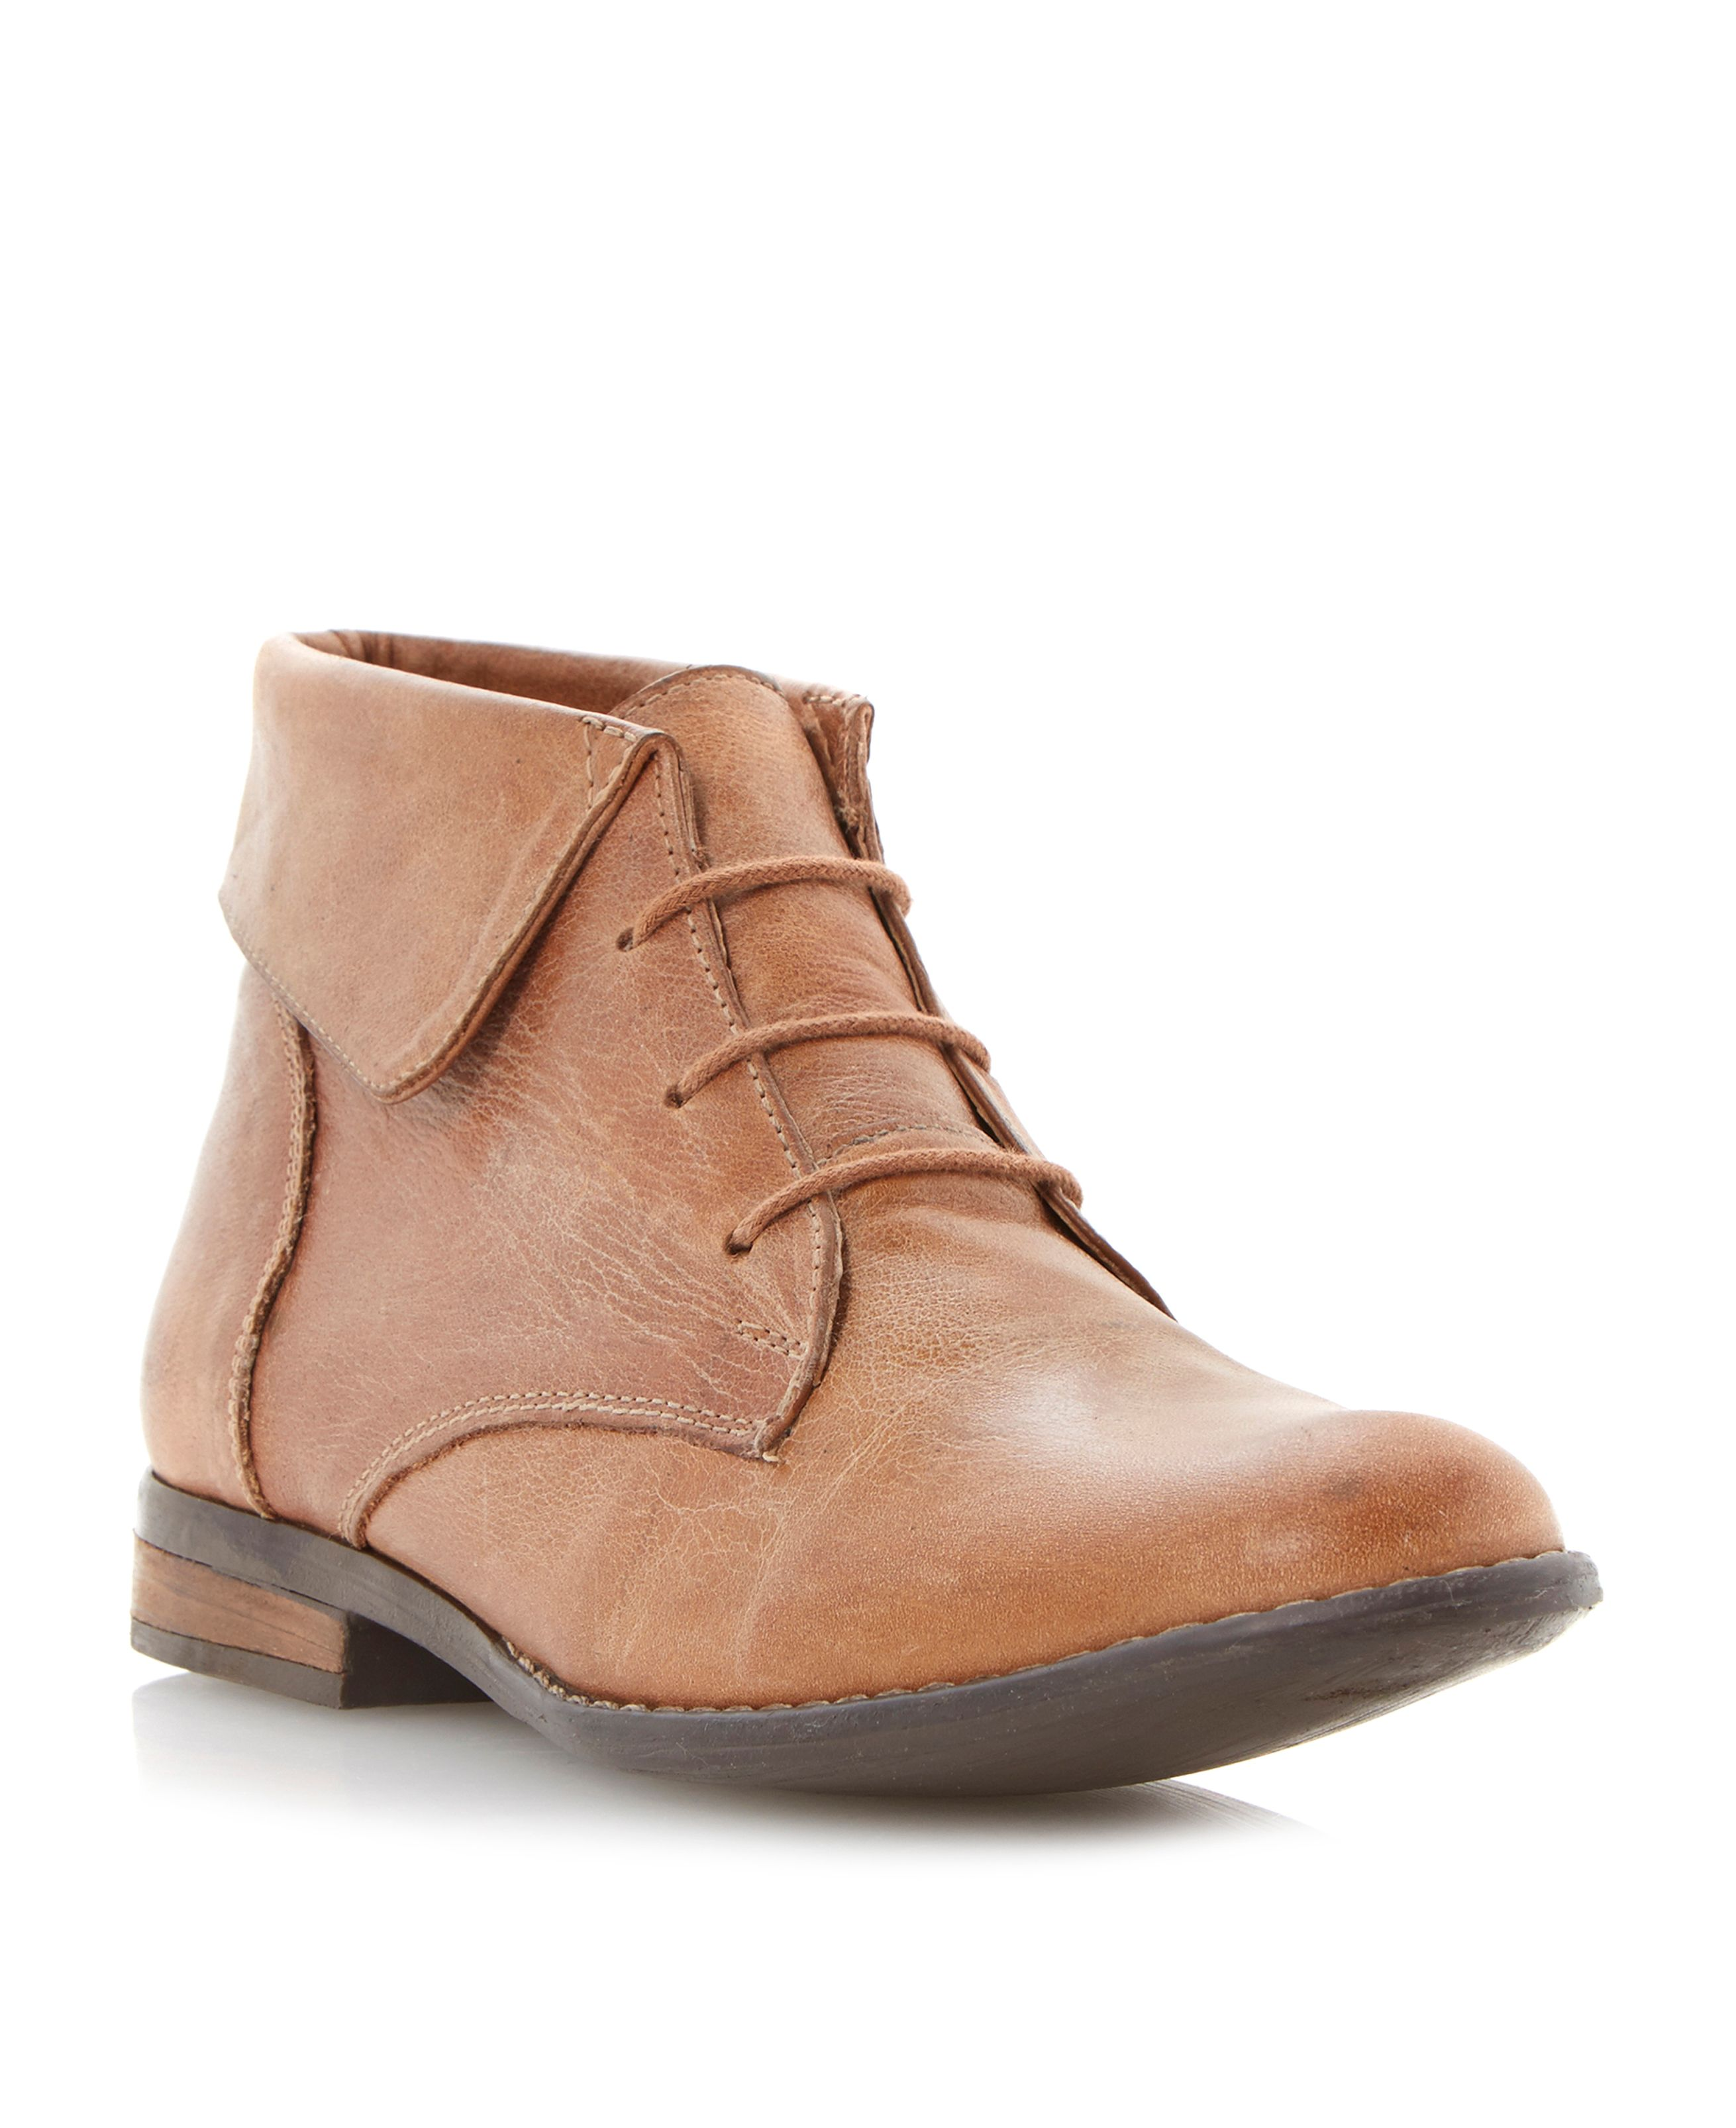 Stingrei fold down cuff boots